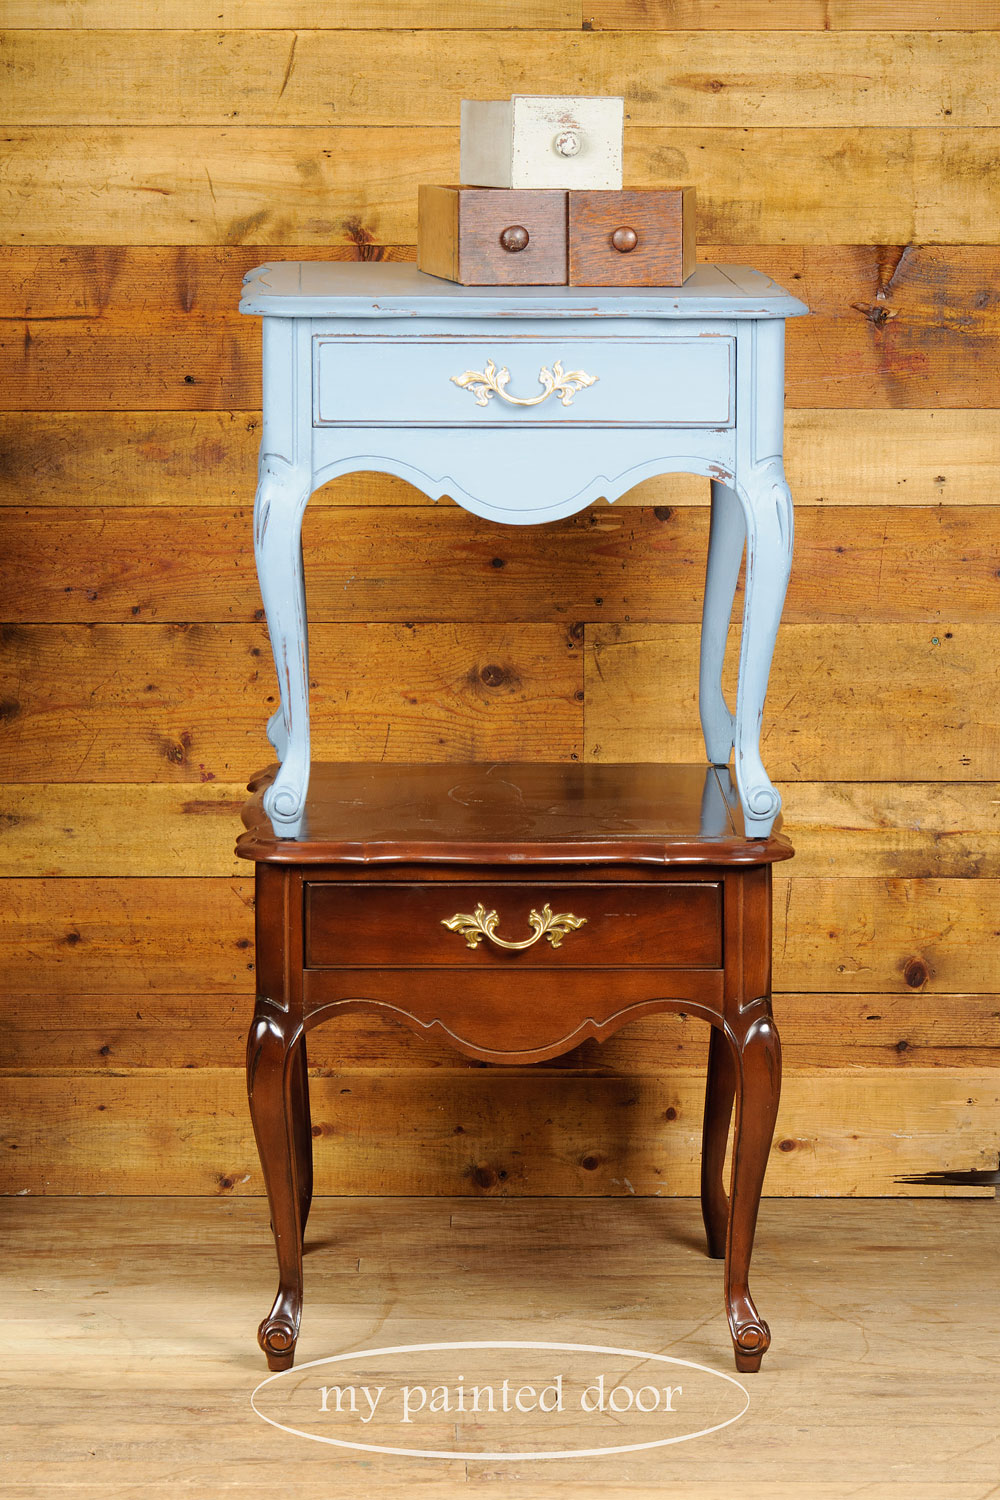 end table painted in rideau blue Homestead House milk paint - via My Painted Door (.com)